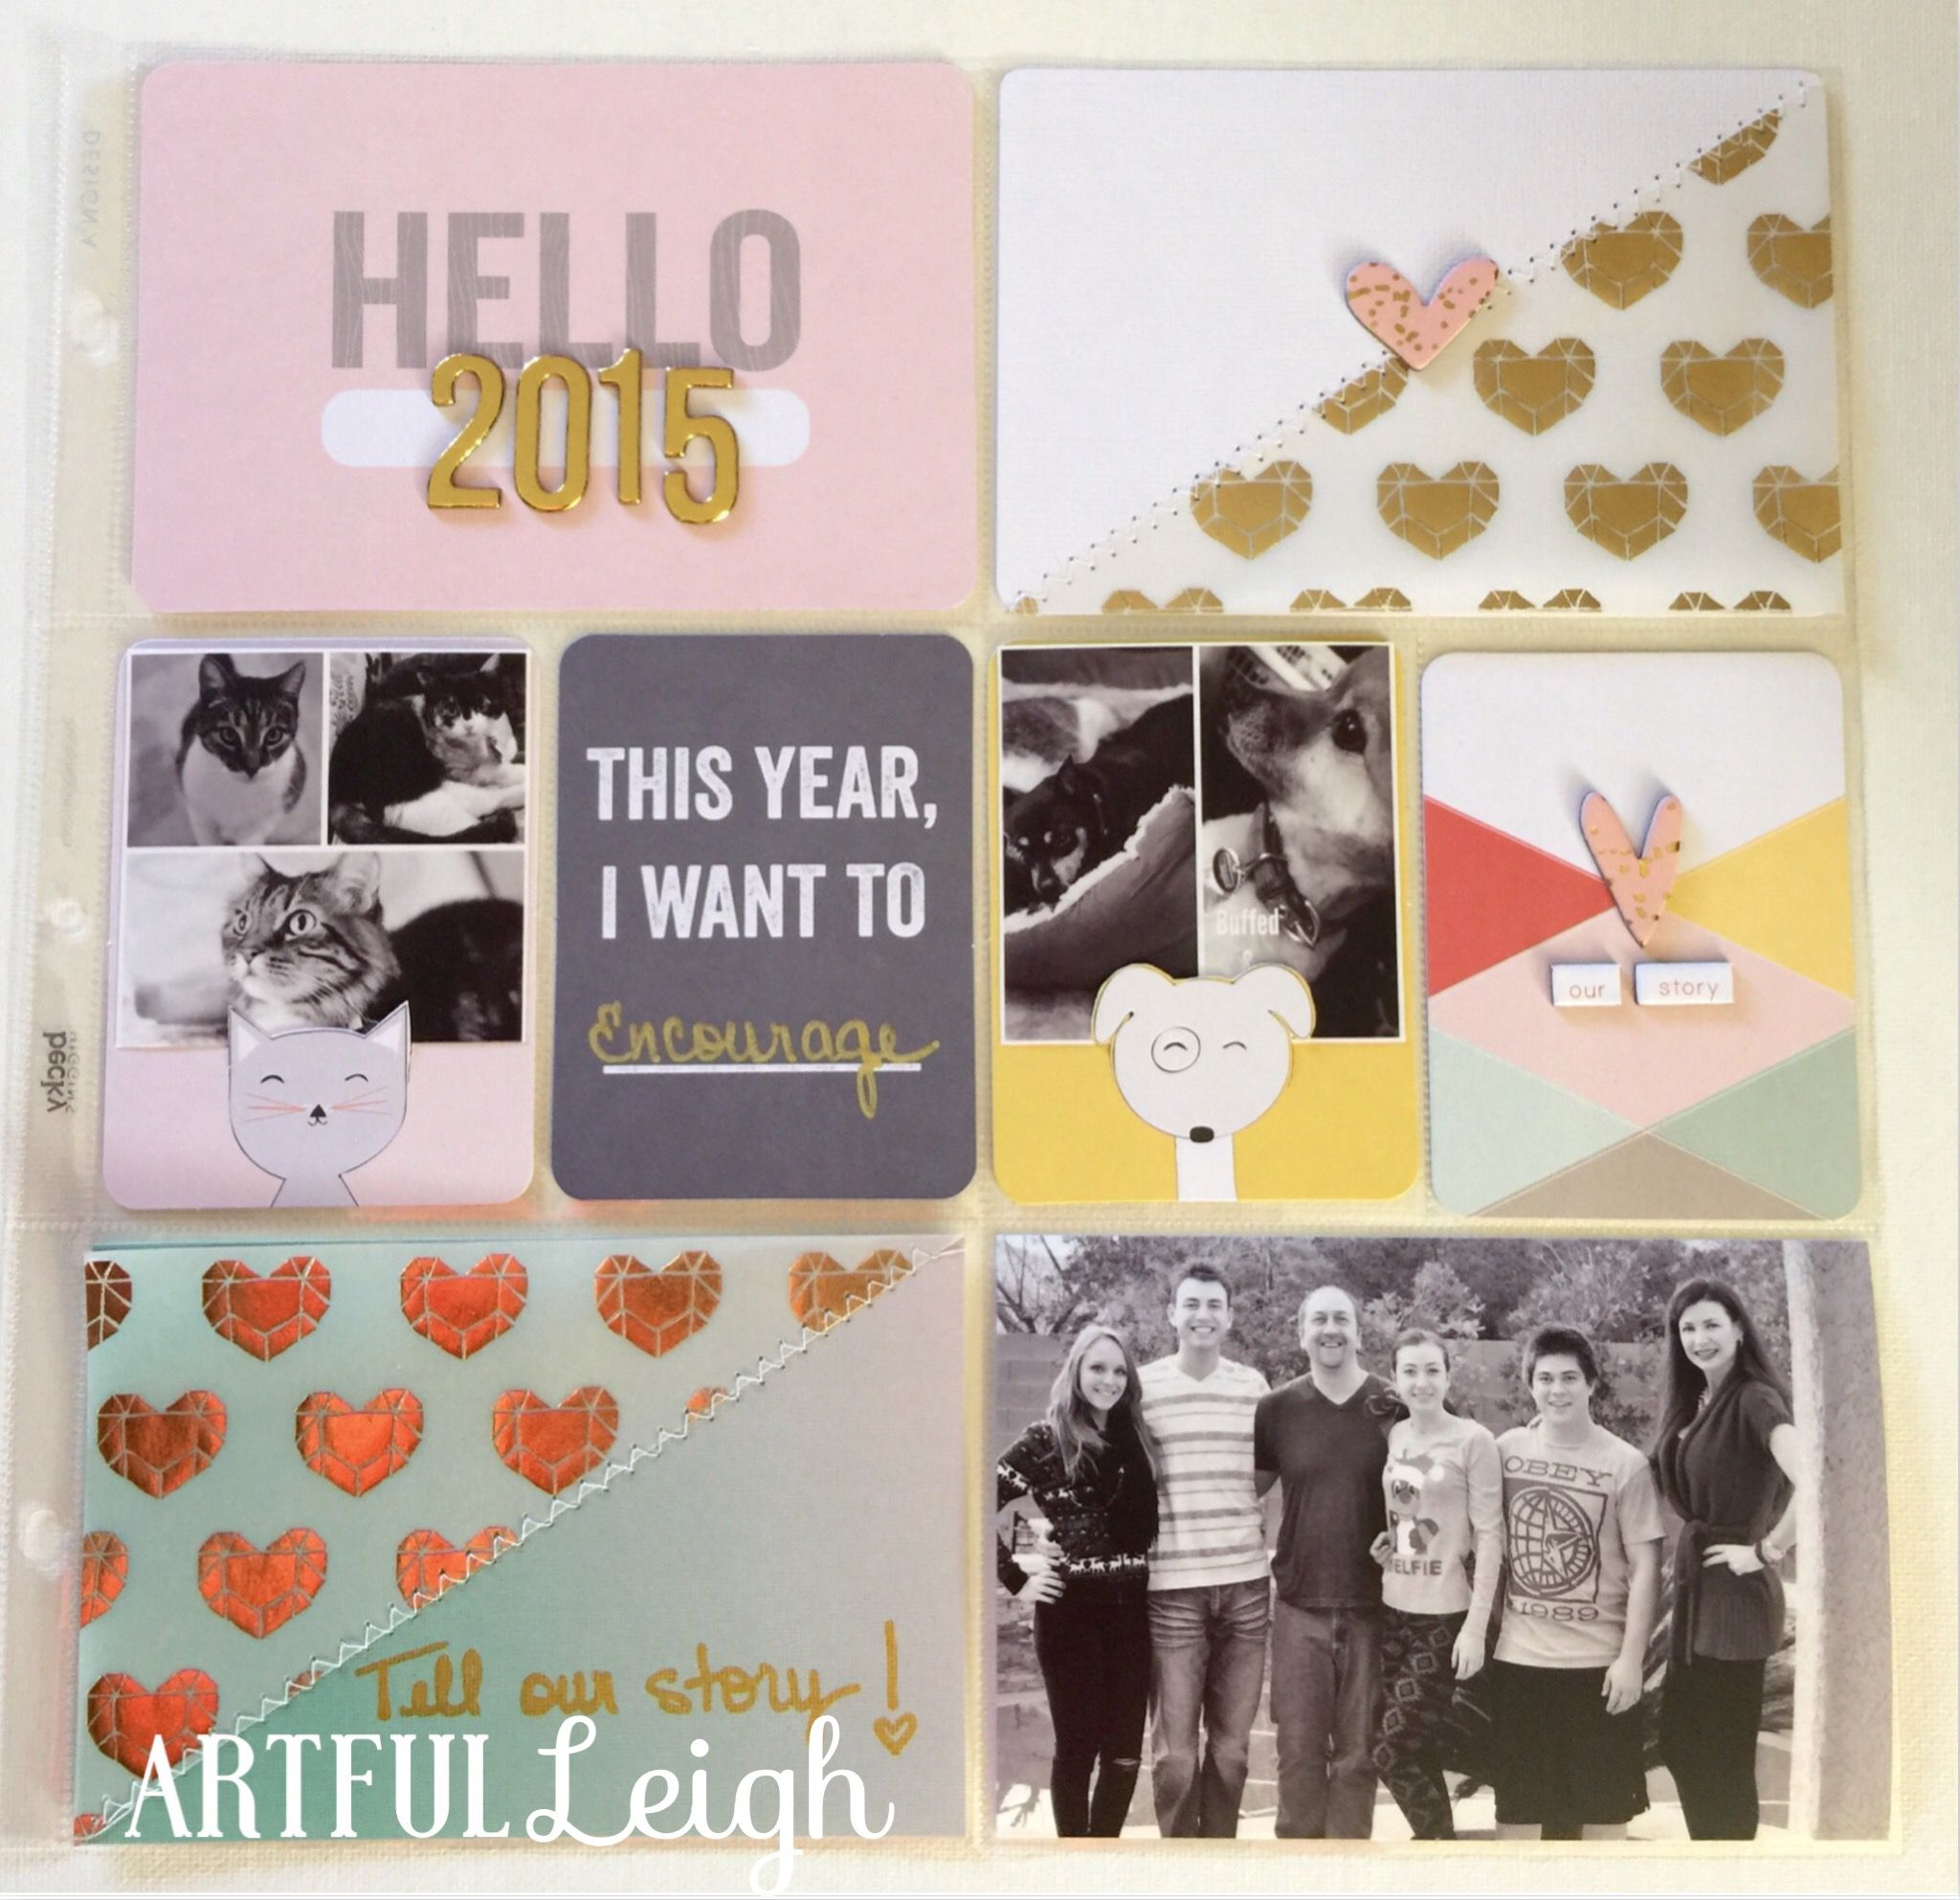 Using Project Life to document the story of our family in 2015, Artful Leigh